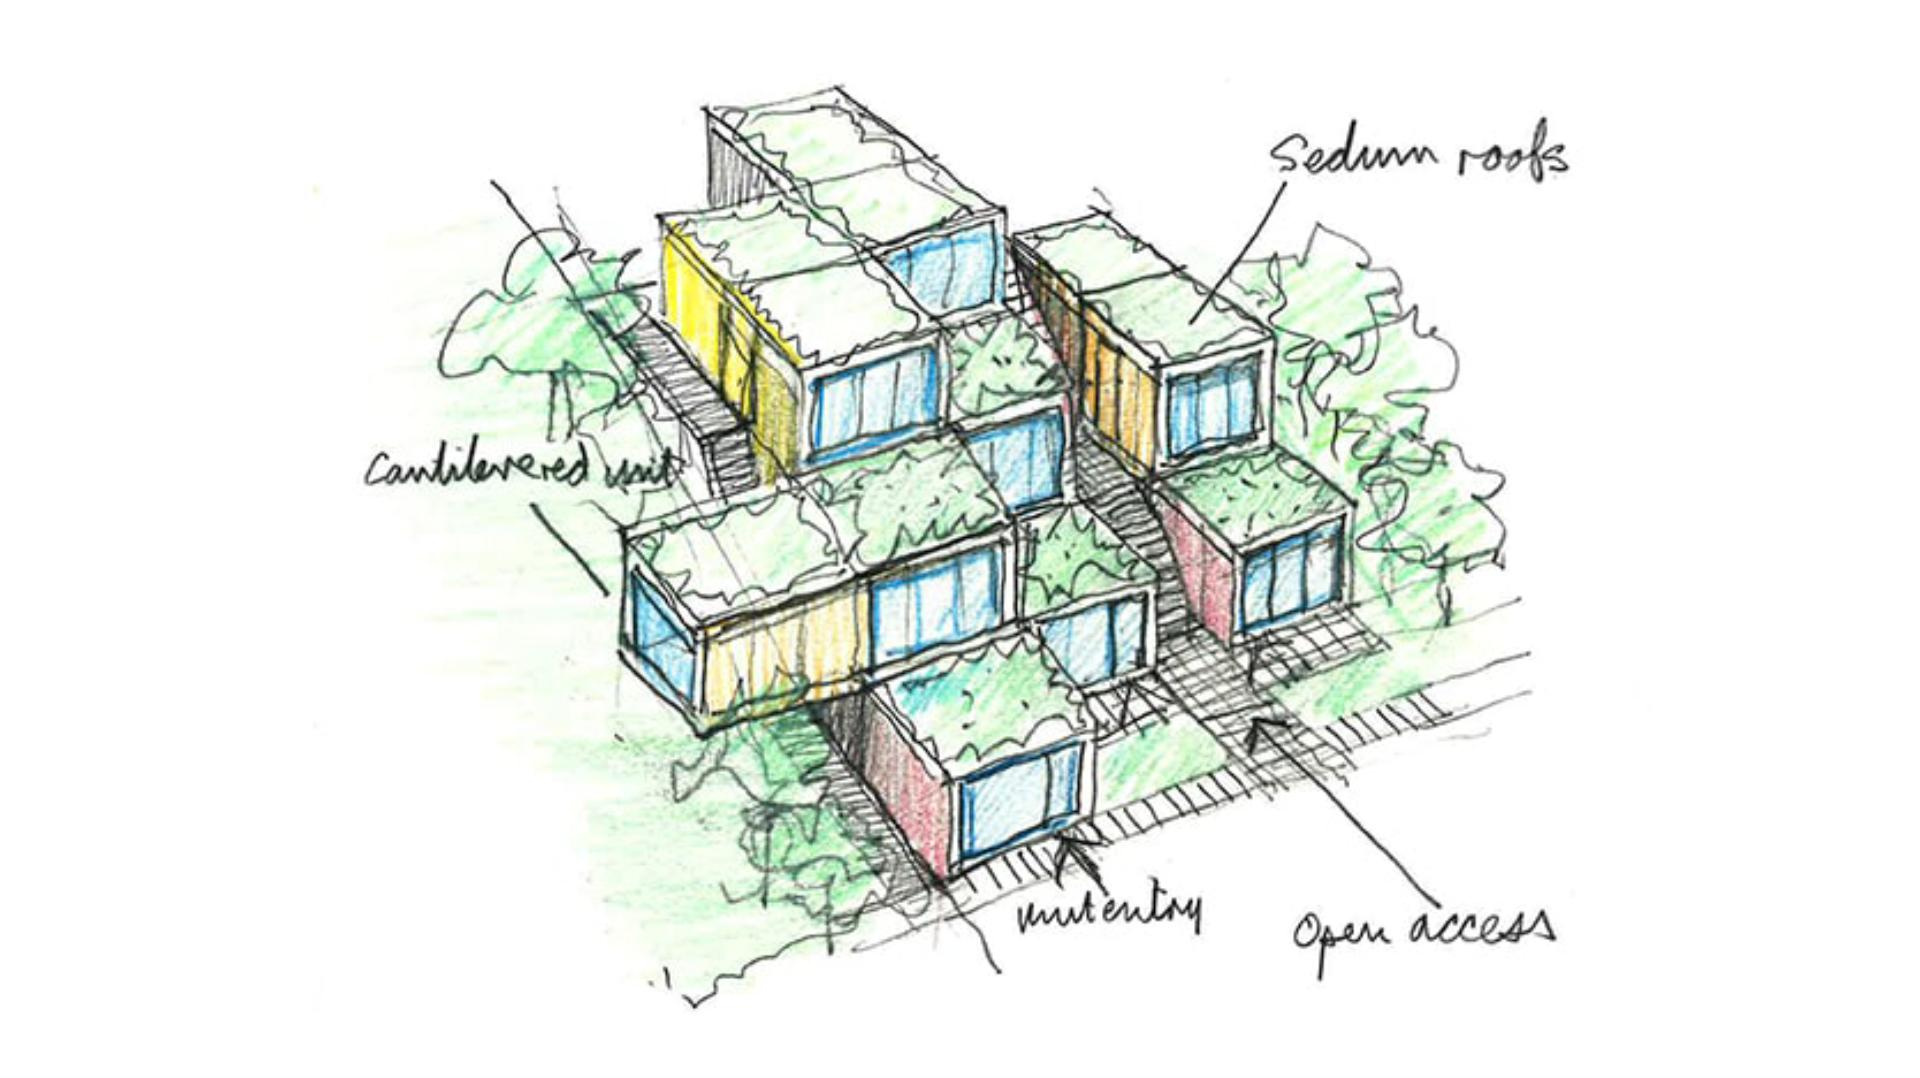 Architect designs of the accommodation 'pods'